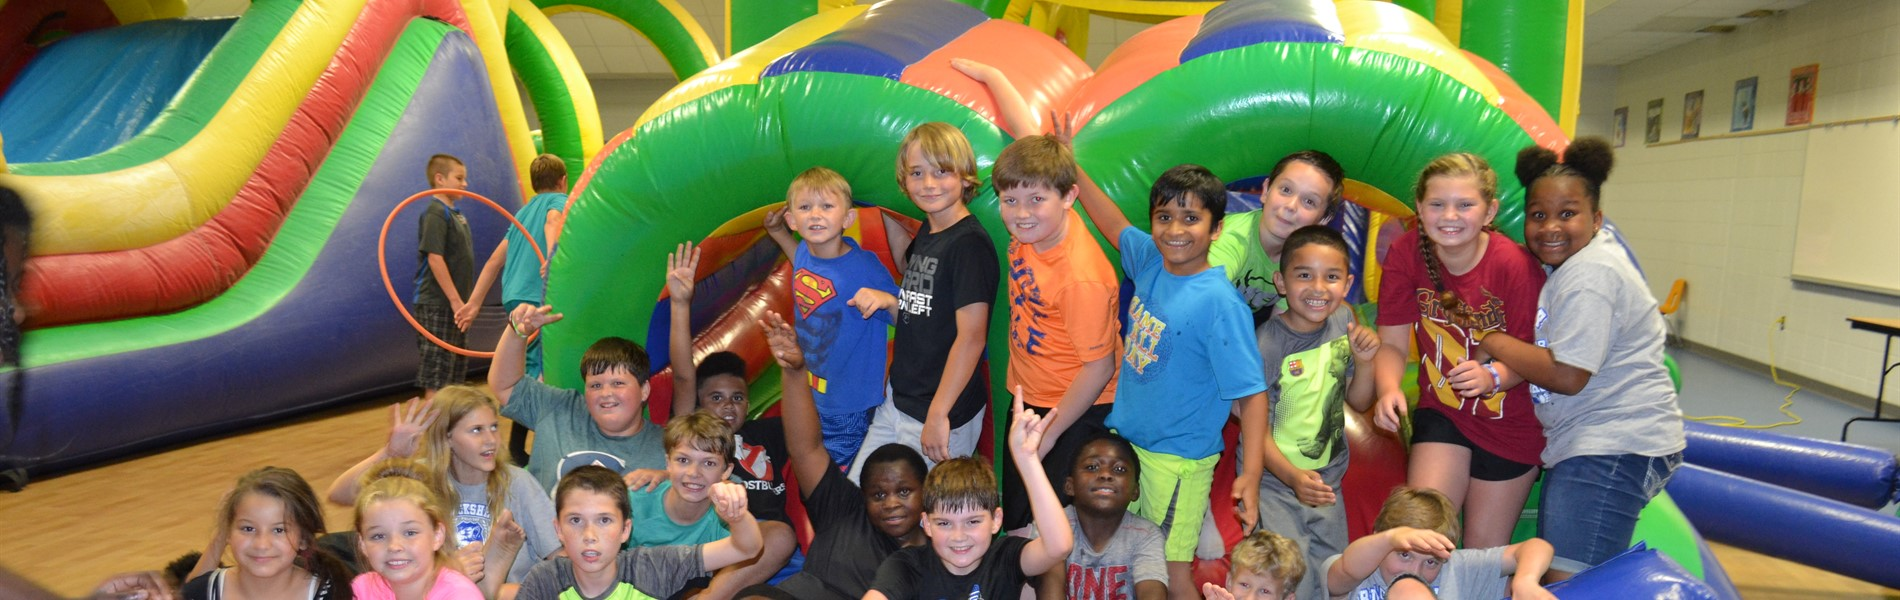 Blackshear Elementary students posing by slides